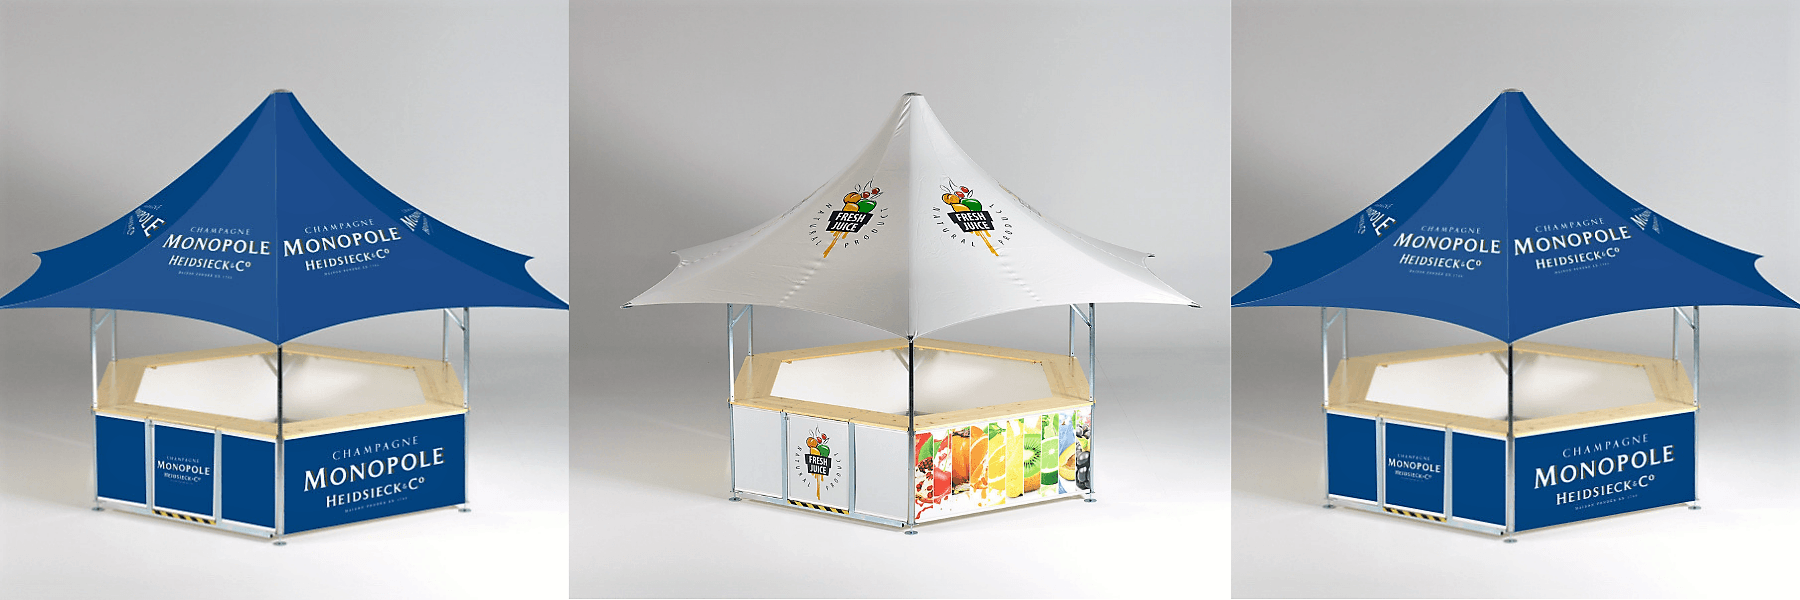 <p>Event, Mobile &amp; Stadia Bars &#8211; Tents &amp; Marquees &#8211; Star Pavilion</p> <p>&nbsp;</p> <p>Elegant Outdoor Event Bar</p> <p>&nbsp;</p> <p>Ideally suited for serving premium champagne brands from at high-class sporting events, venues and attractions.</p>